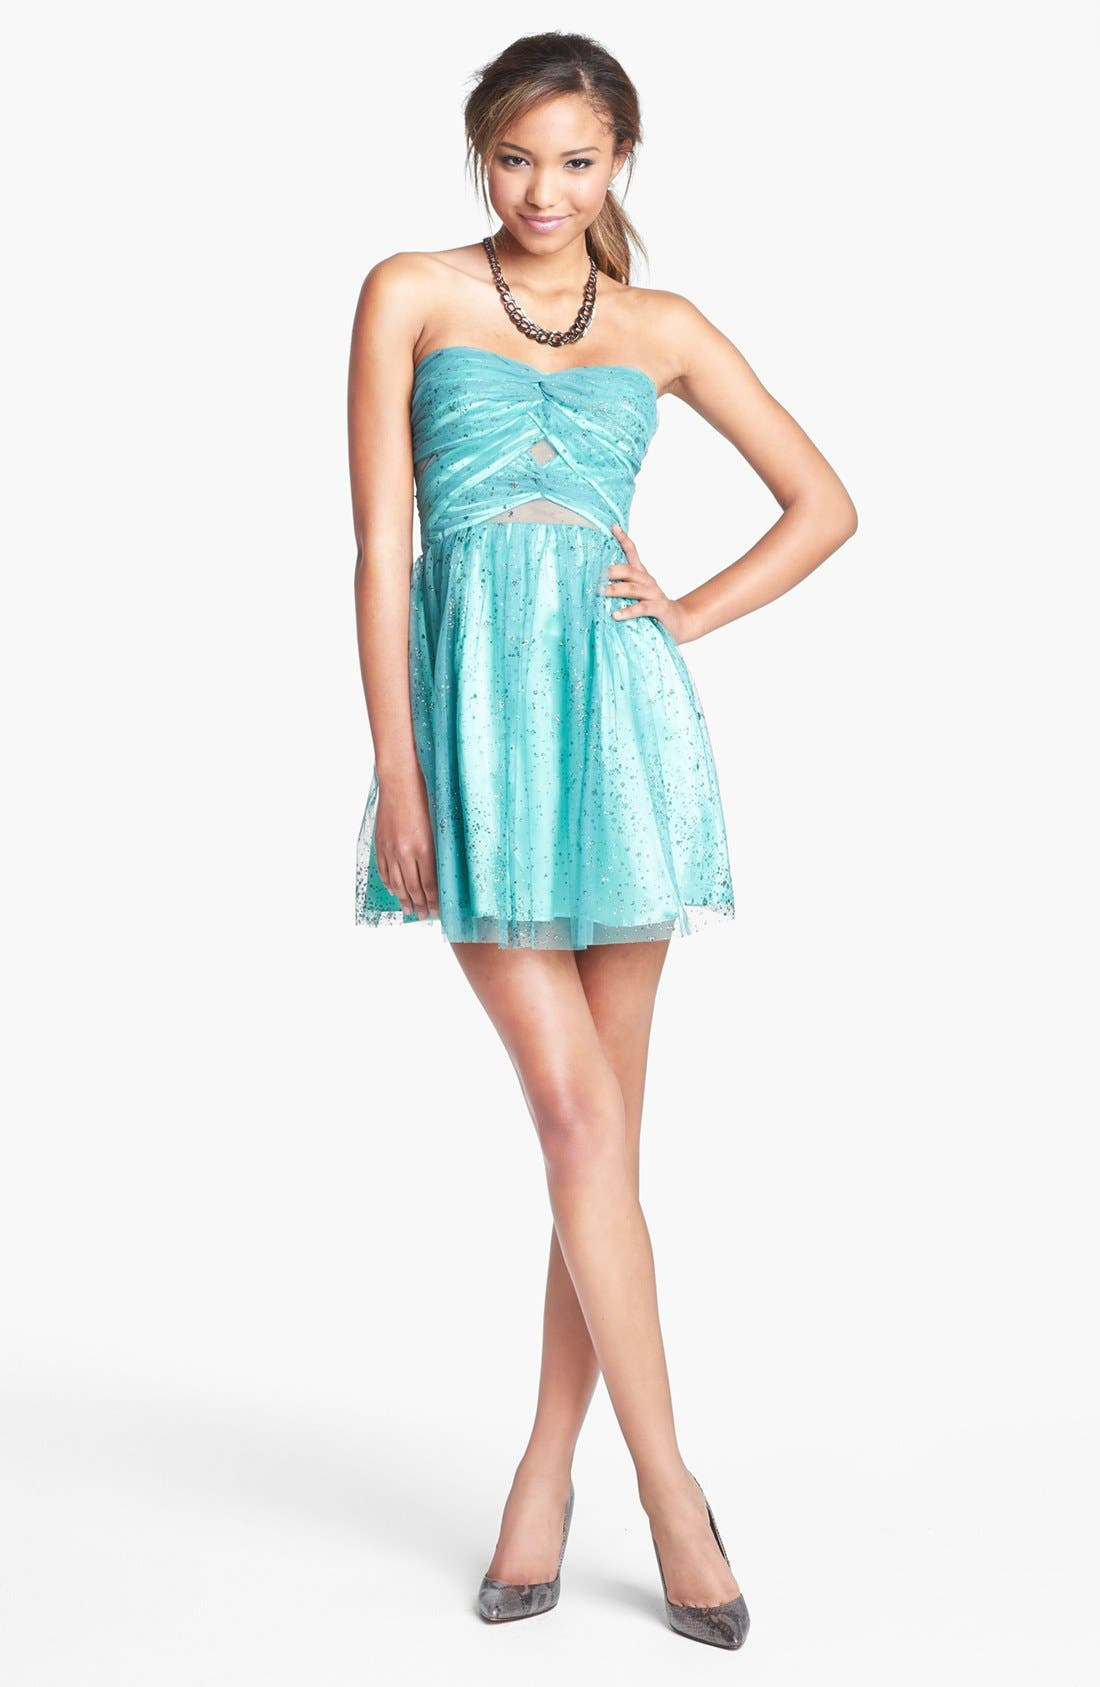 Alternate Image 1 Selected - Hailey Logan Mesh Inset Glitter Chiffon Fit & Flare Dress (Juniors) (Online Only)